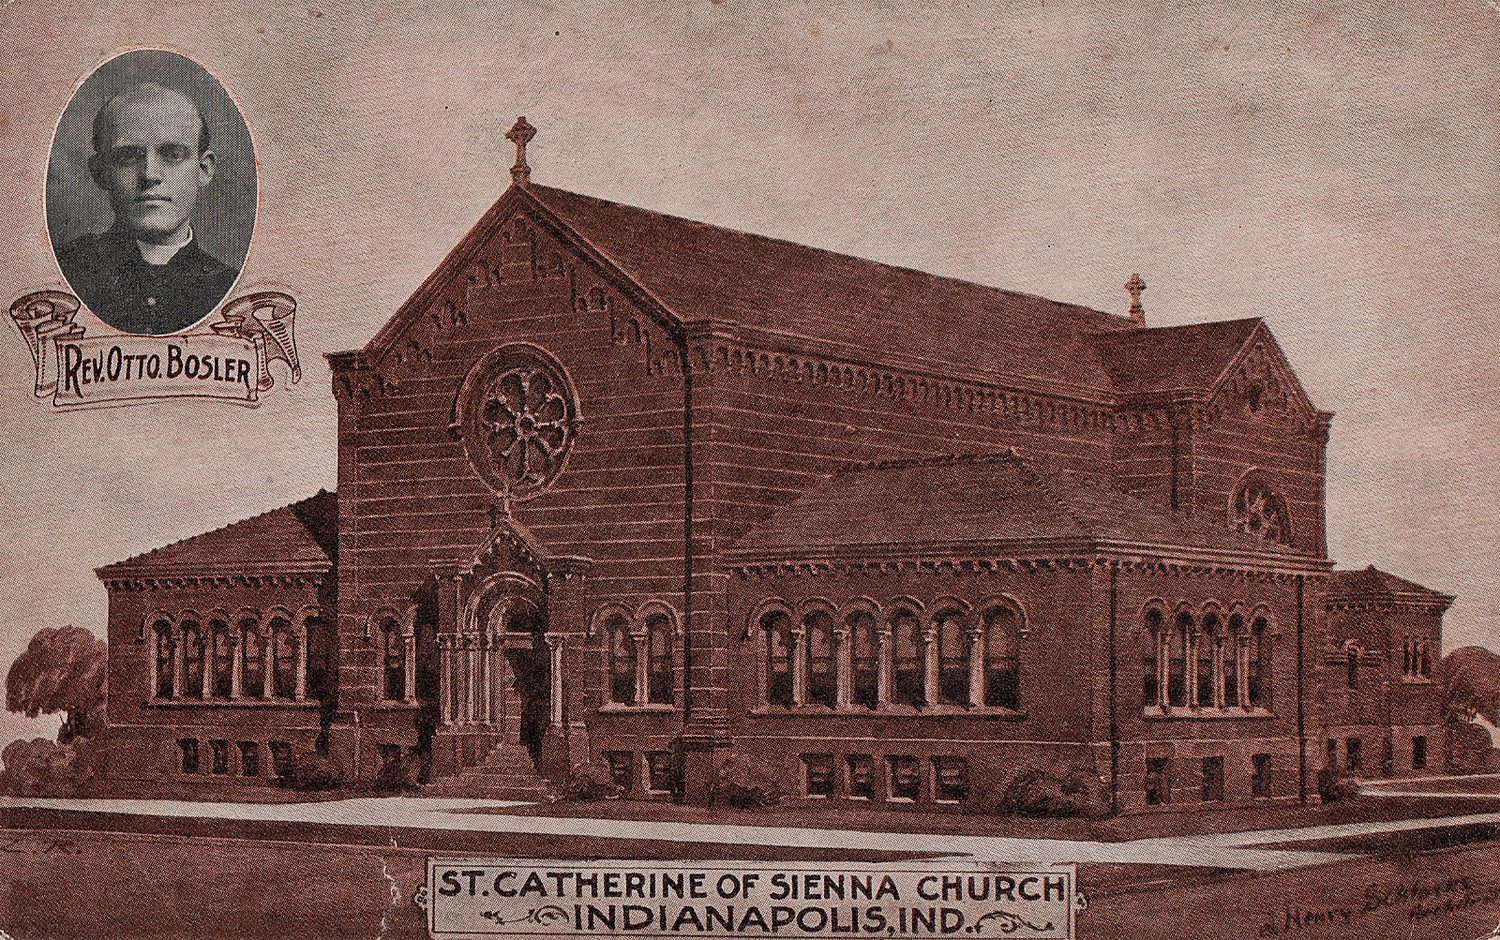 HI Mailbag:  St. Catherine of Siena Church